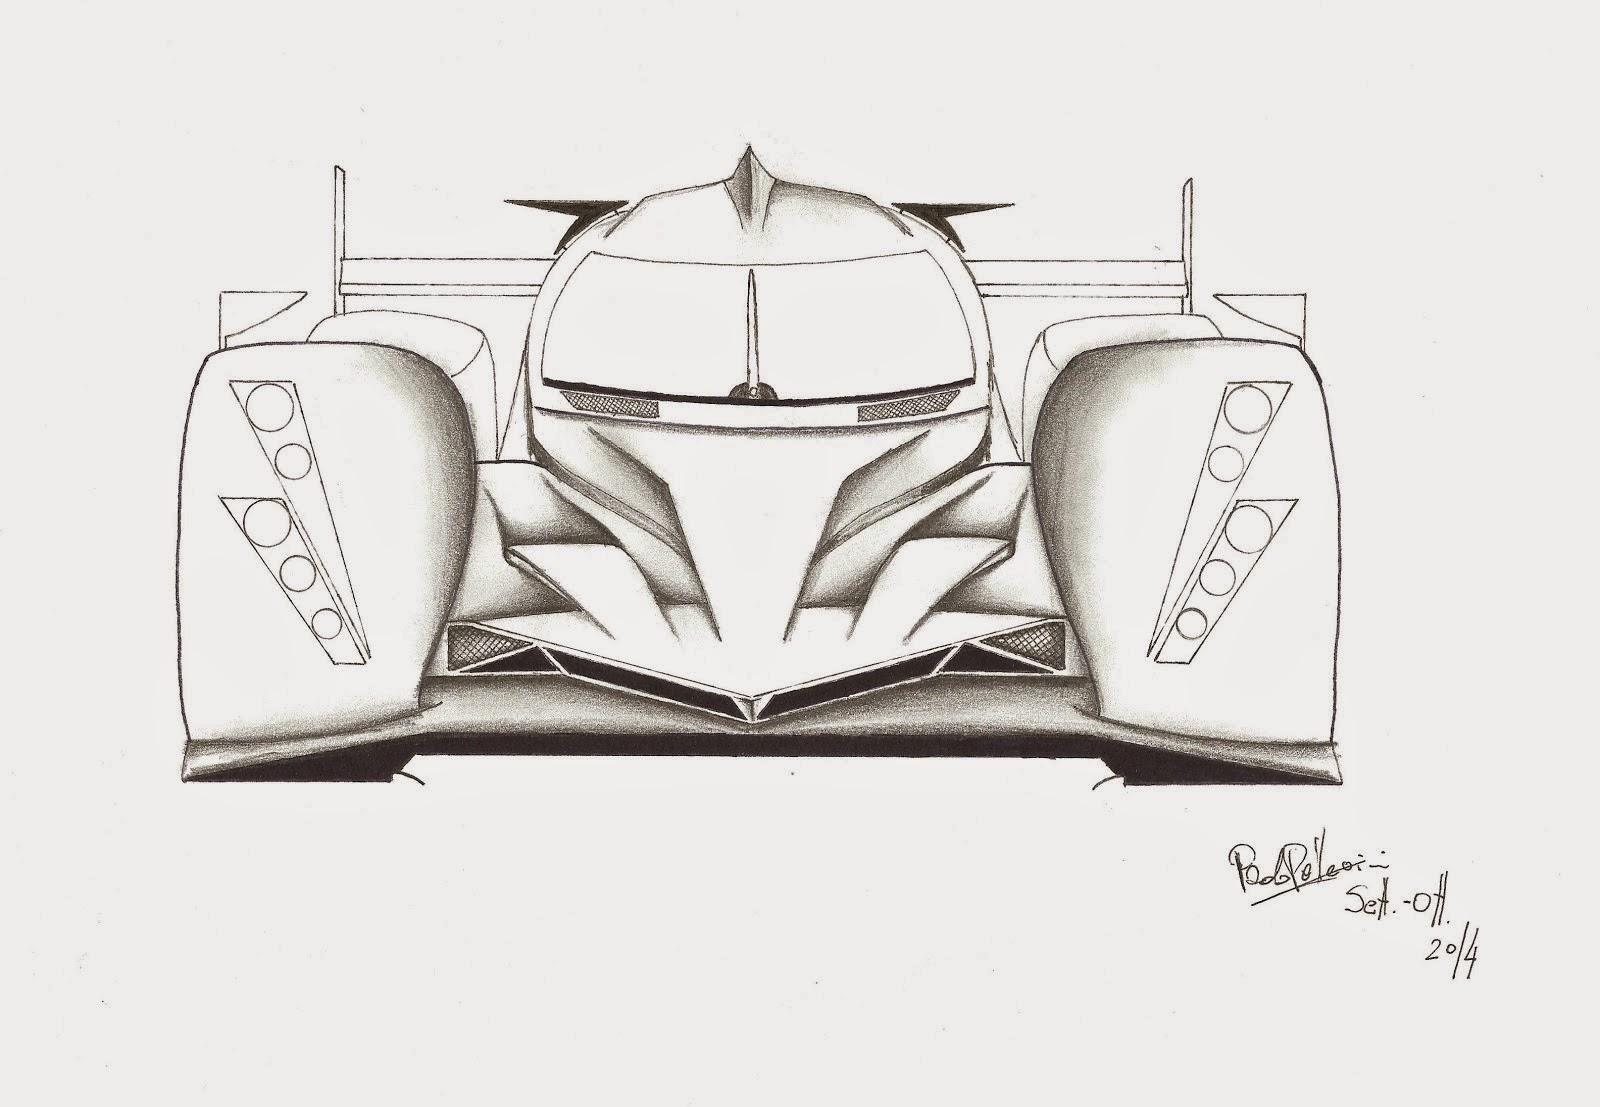 Le Mans Prototype 1 project